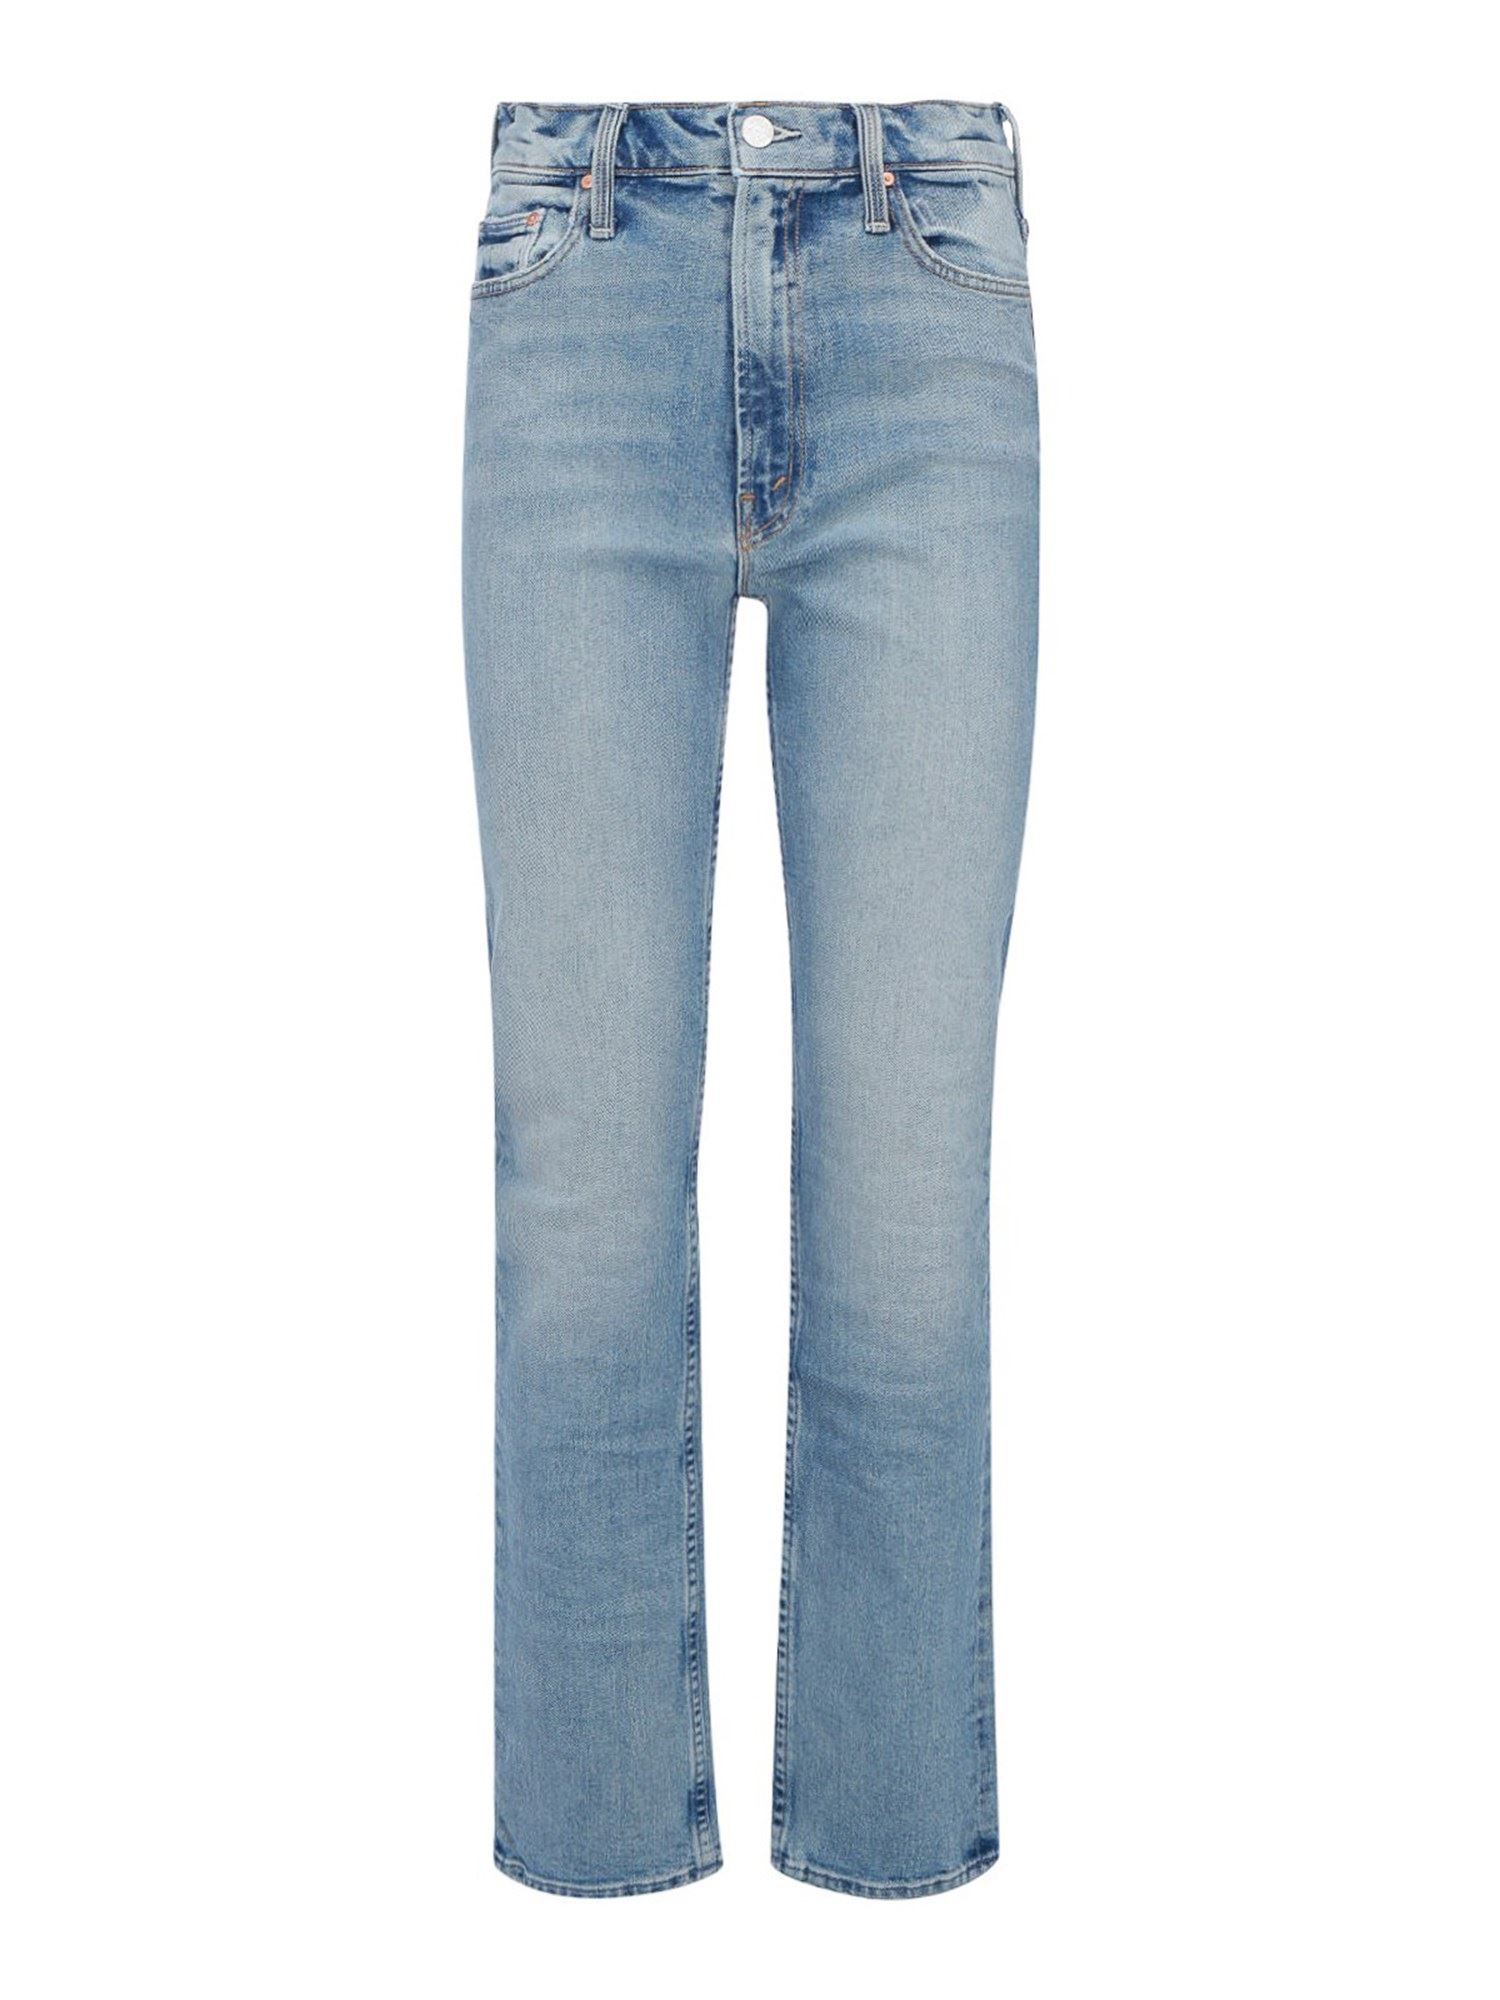 Mother LIGHT WASH DENIM JEANS